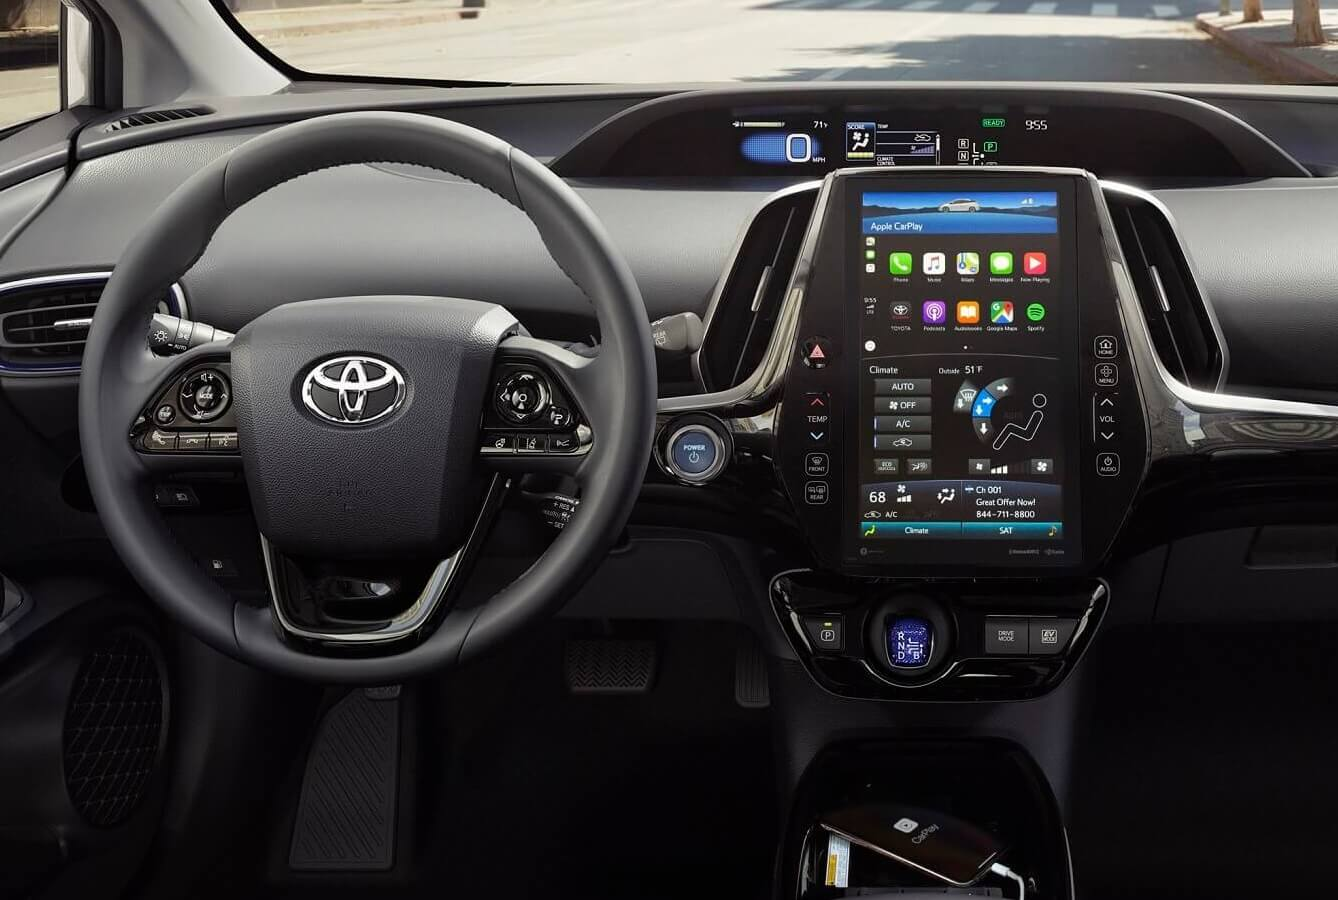 Toyota Prius Interior with Apple CarPlay®